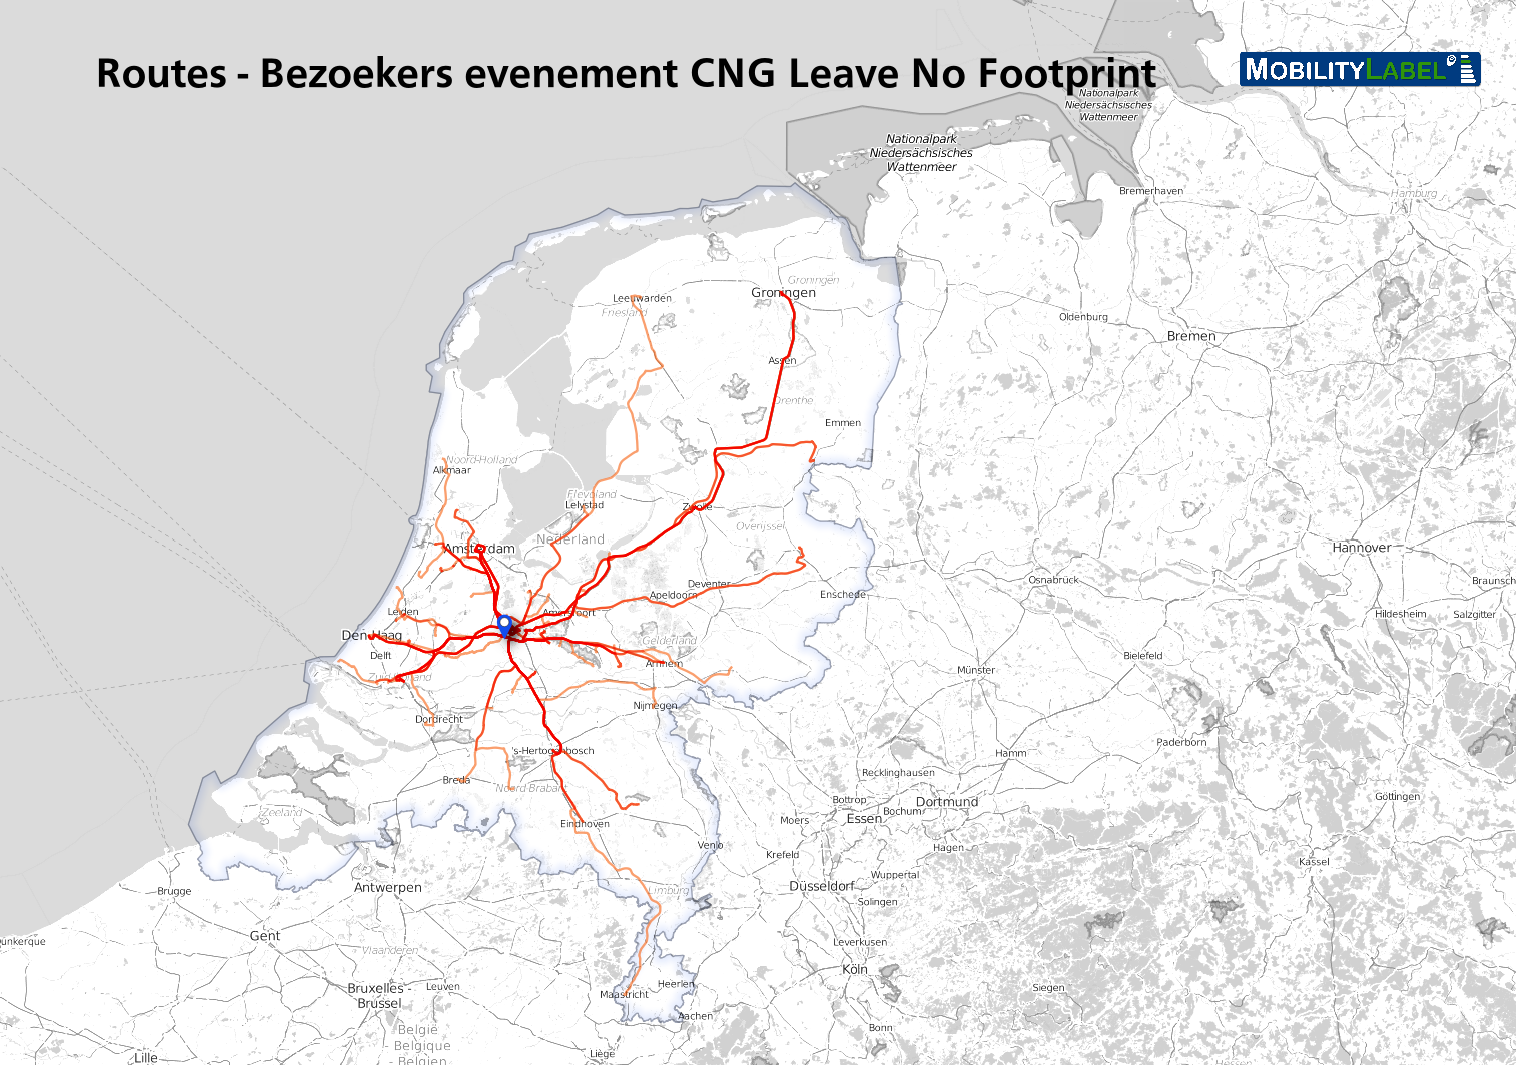 CO2-uitstoot CNG-event 'Leave no footprint' in kaart gebracht